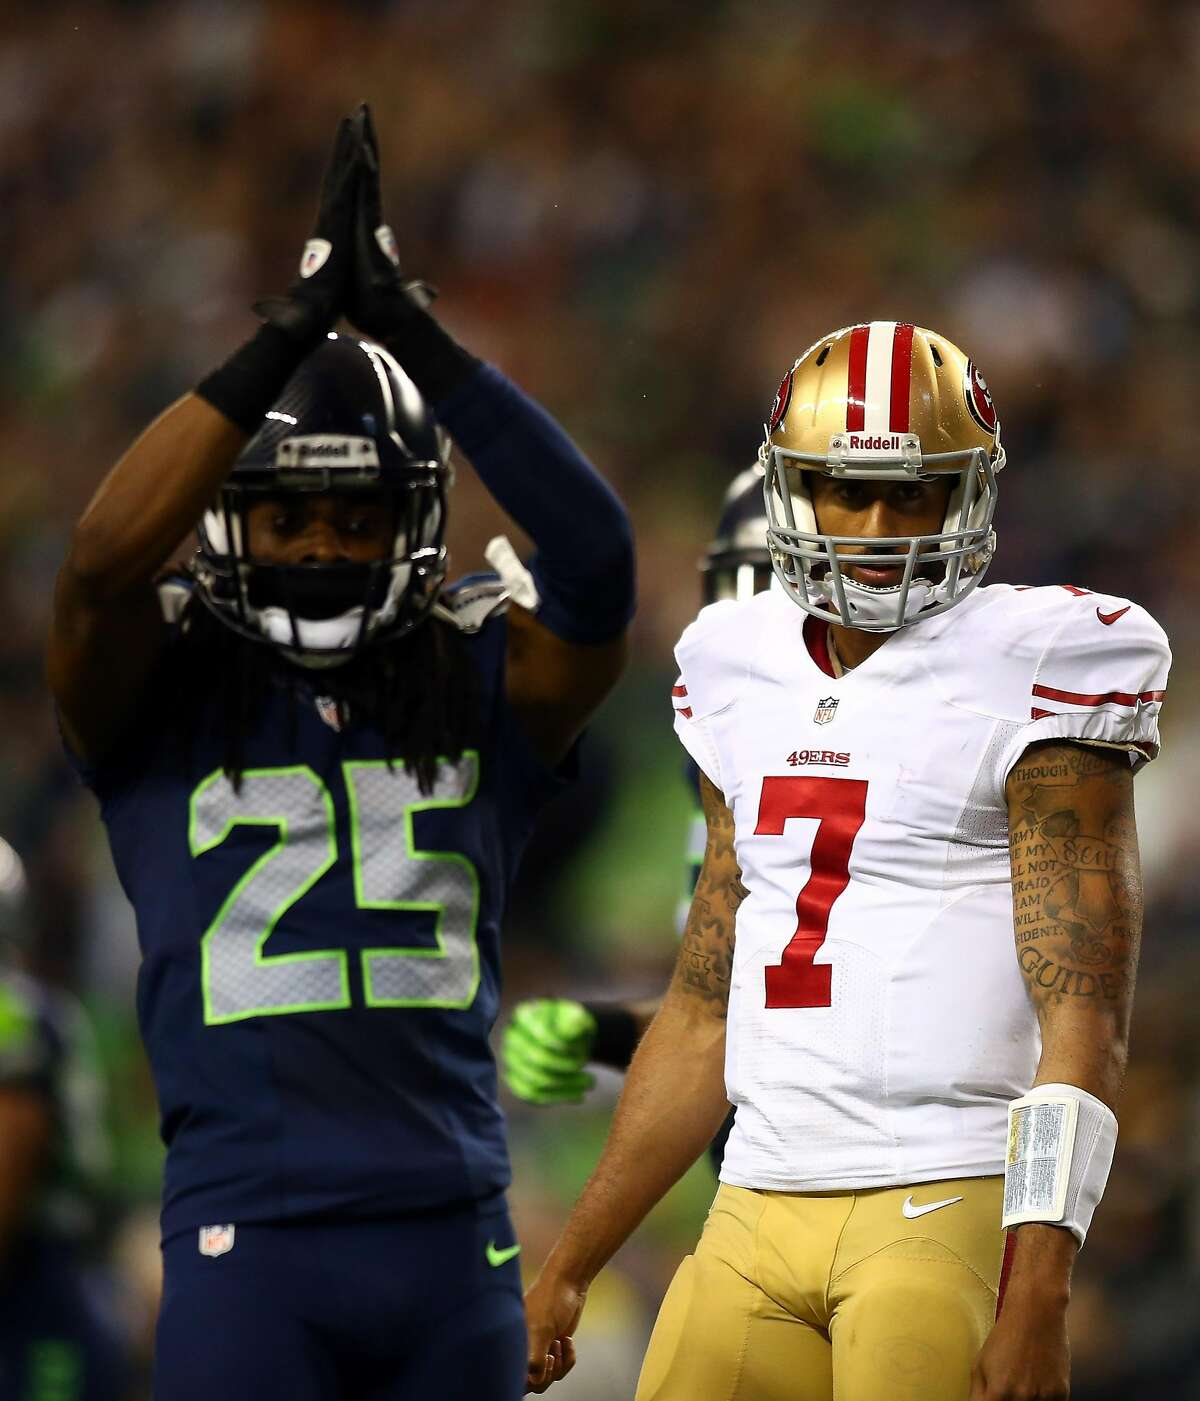 SEATTLE, WA - SEPTEMBER 15: Colin Kaepernick #7 of the San Francisco 49ers looks on as Richard Sherman #25 of the Seattle Seahawks celebrates a saftey during their game at Qwest Field on September 15, 2013 in Seattle, Washington. (Photo by Jonathan Ferrey/Getty Images)